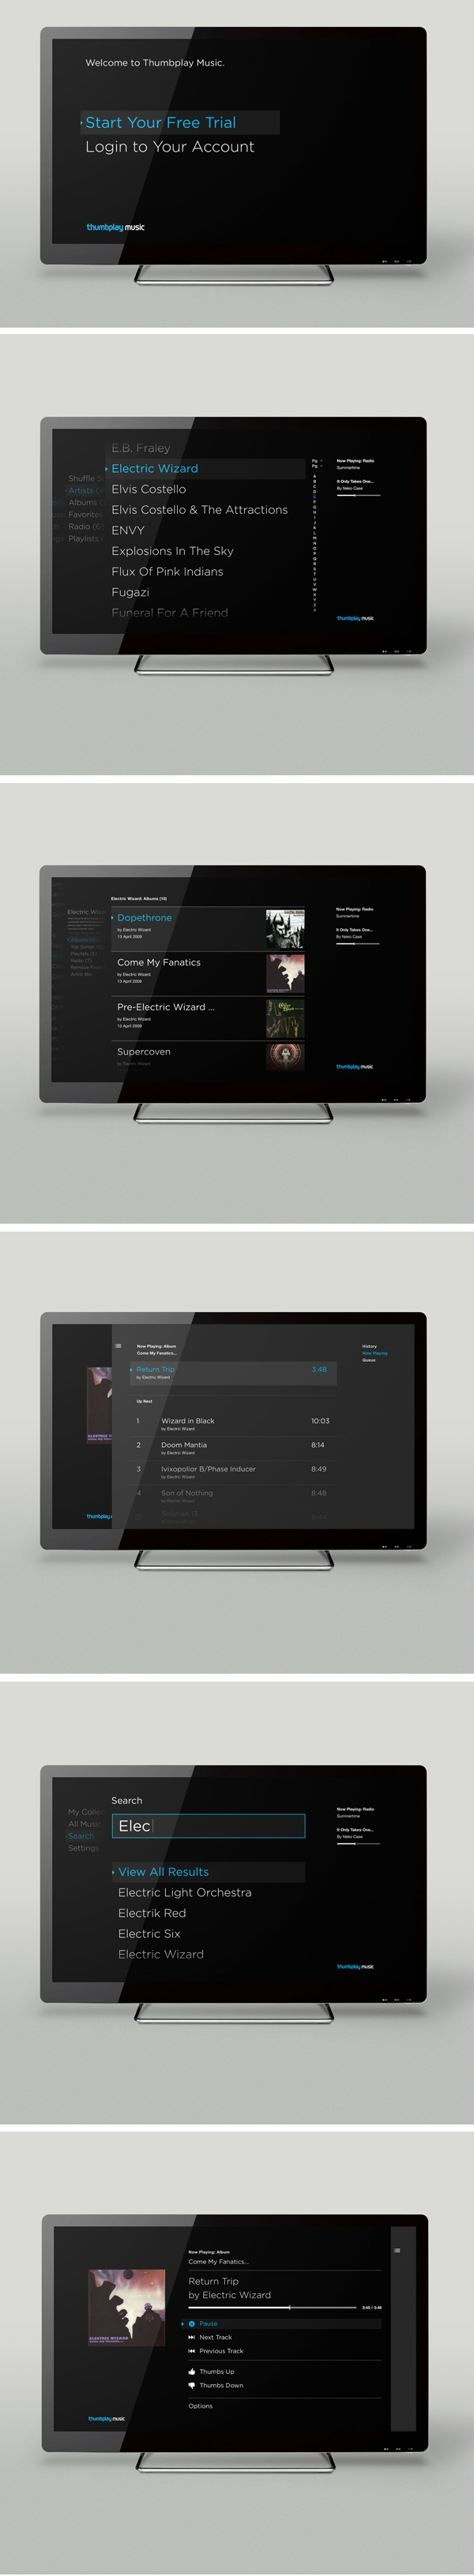 Thumbplay by method #tvinterface love this concept #webdesign